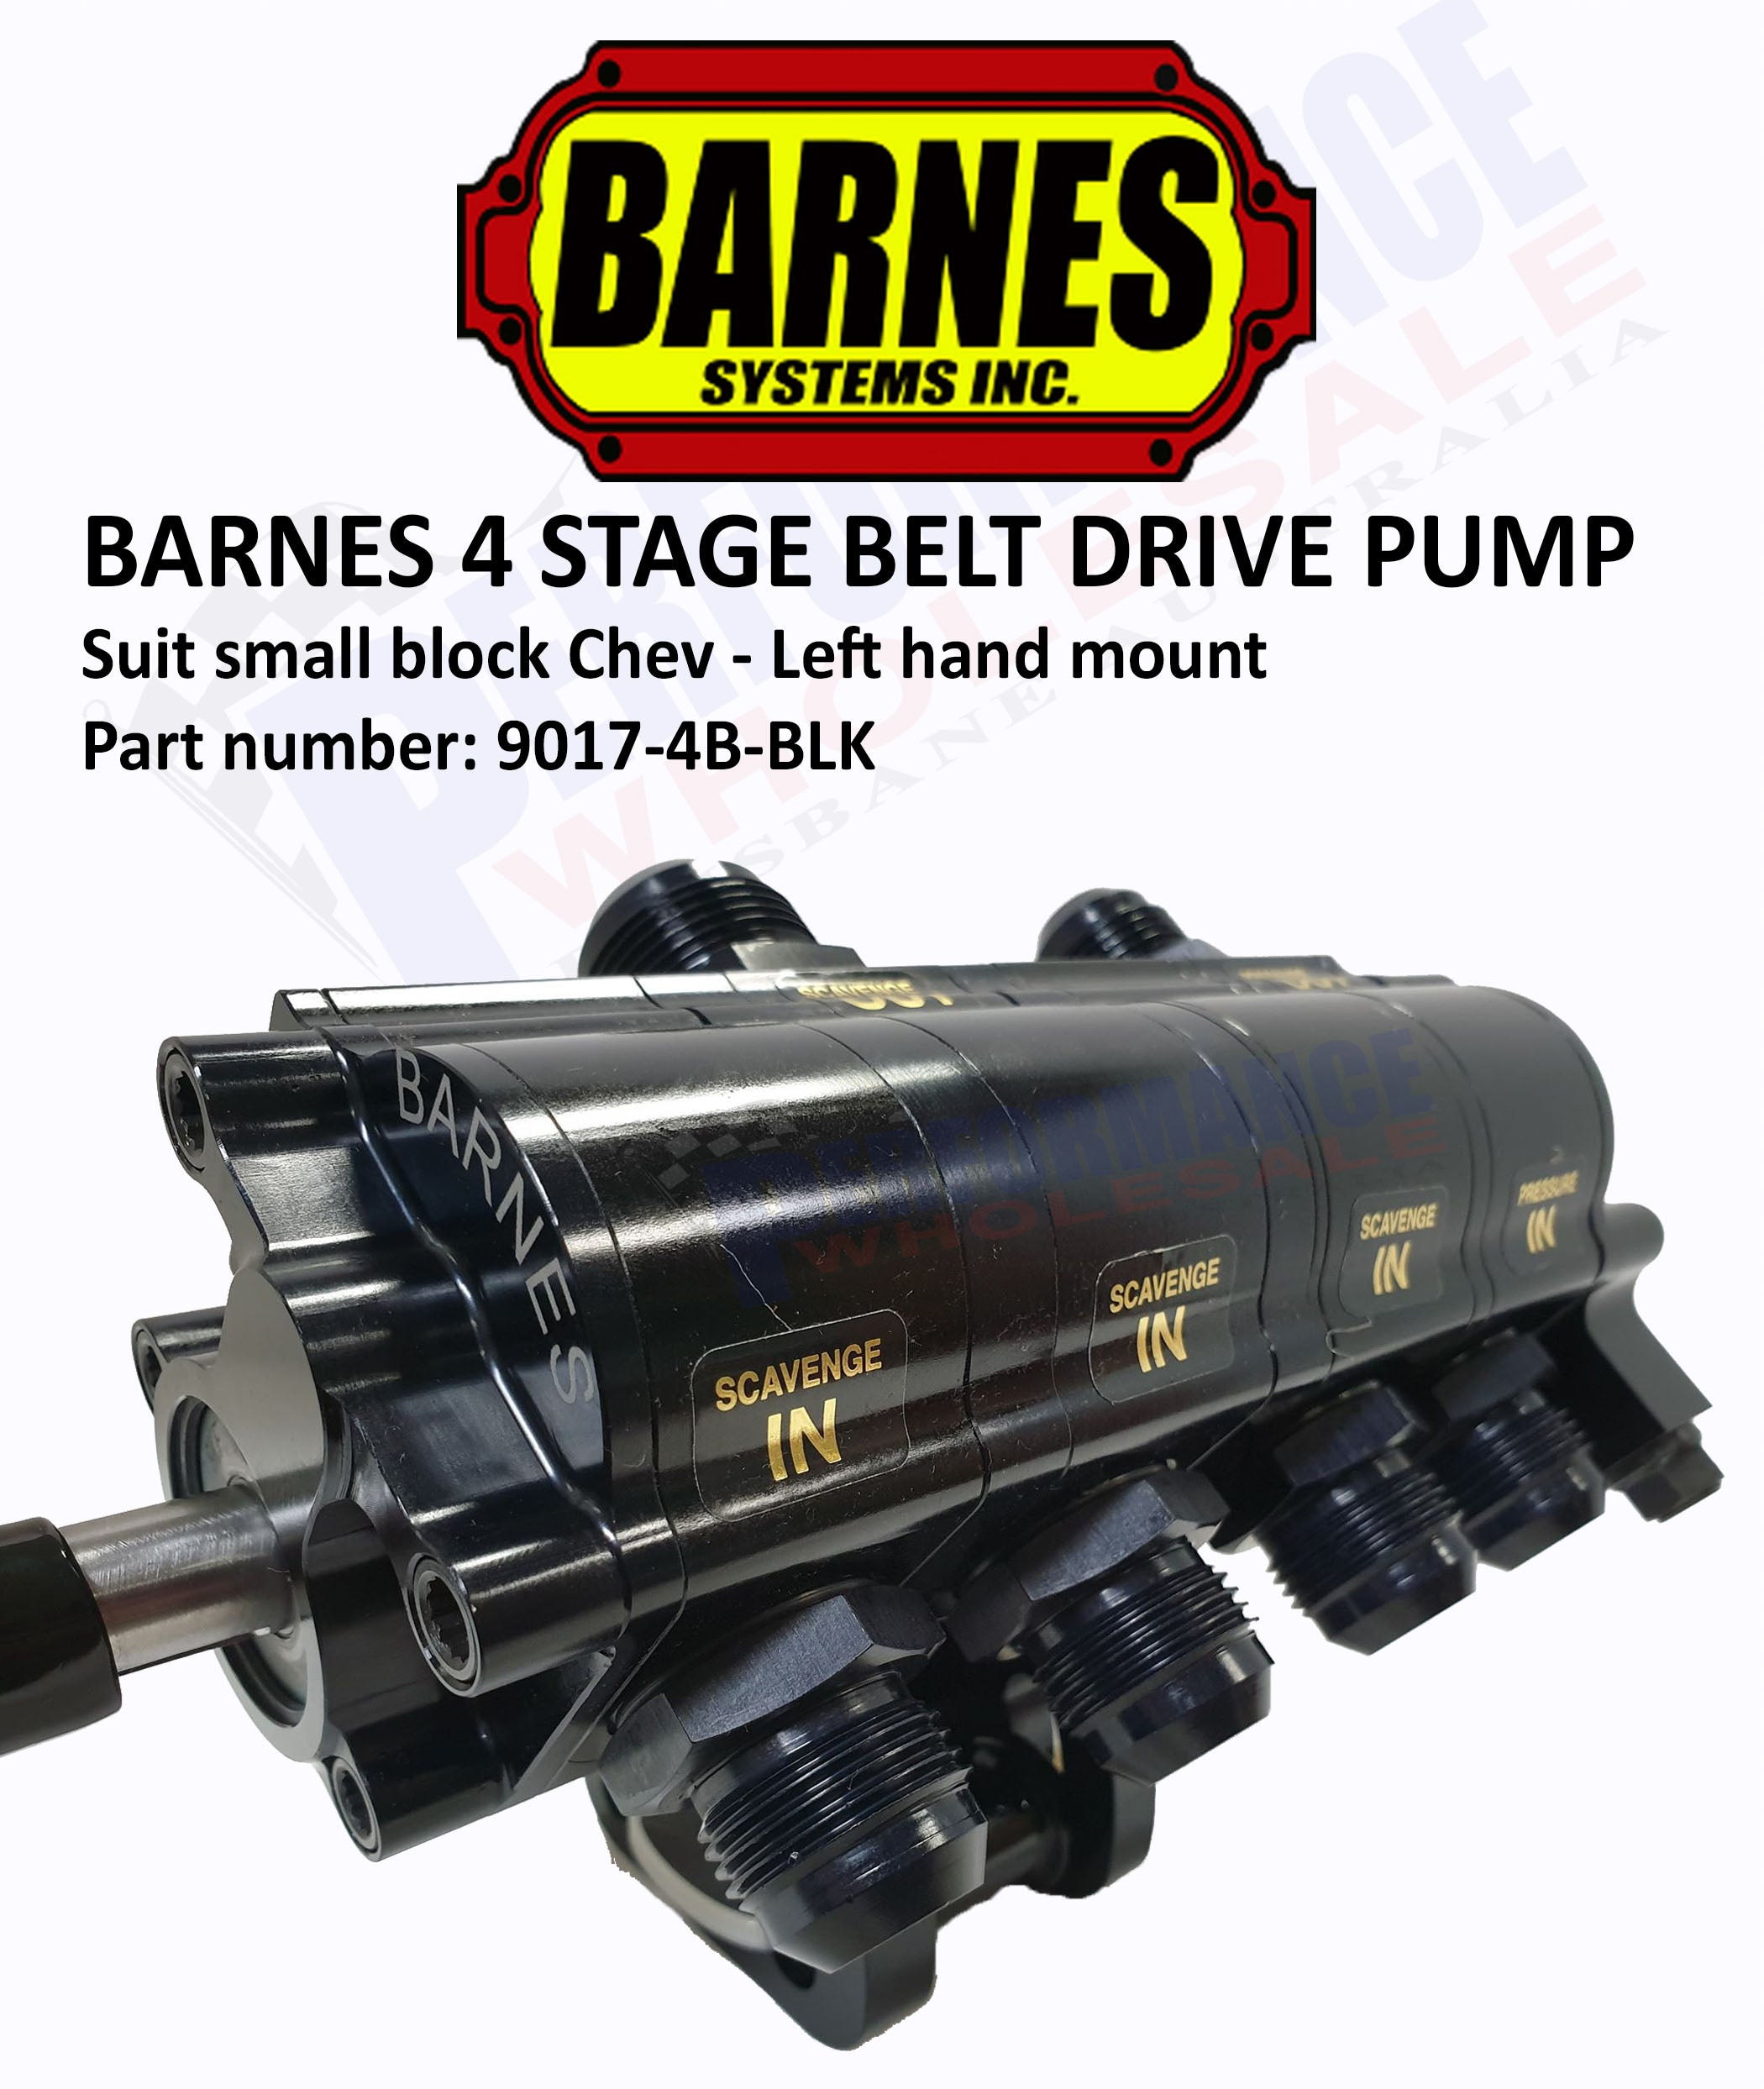 Barnes 4 Stage Belt Drive Dry Sump Pump, SB Chev LH Mount